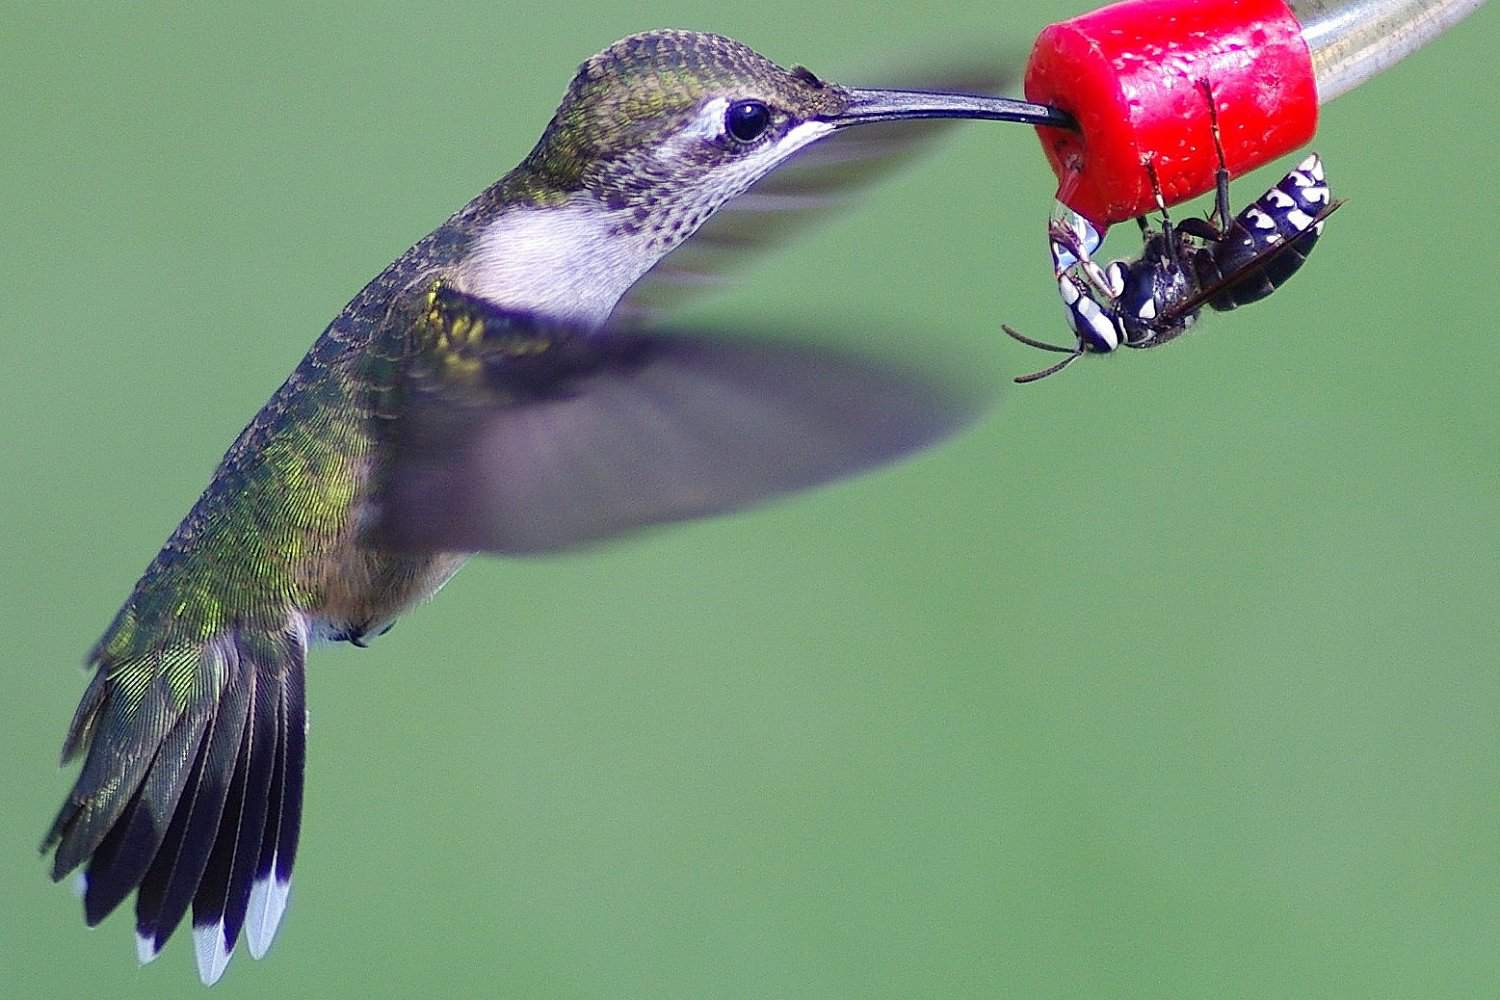 Hummingbird using feeder with a wasp